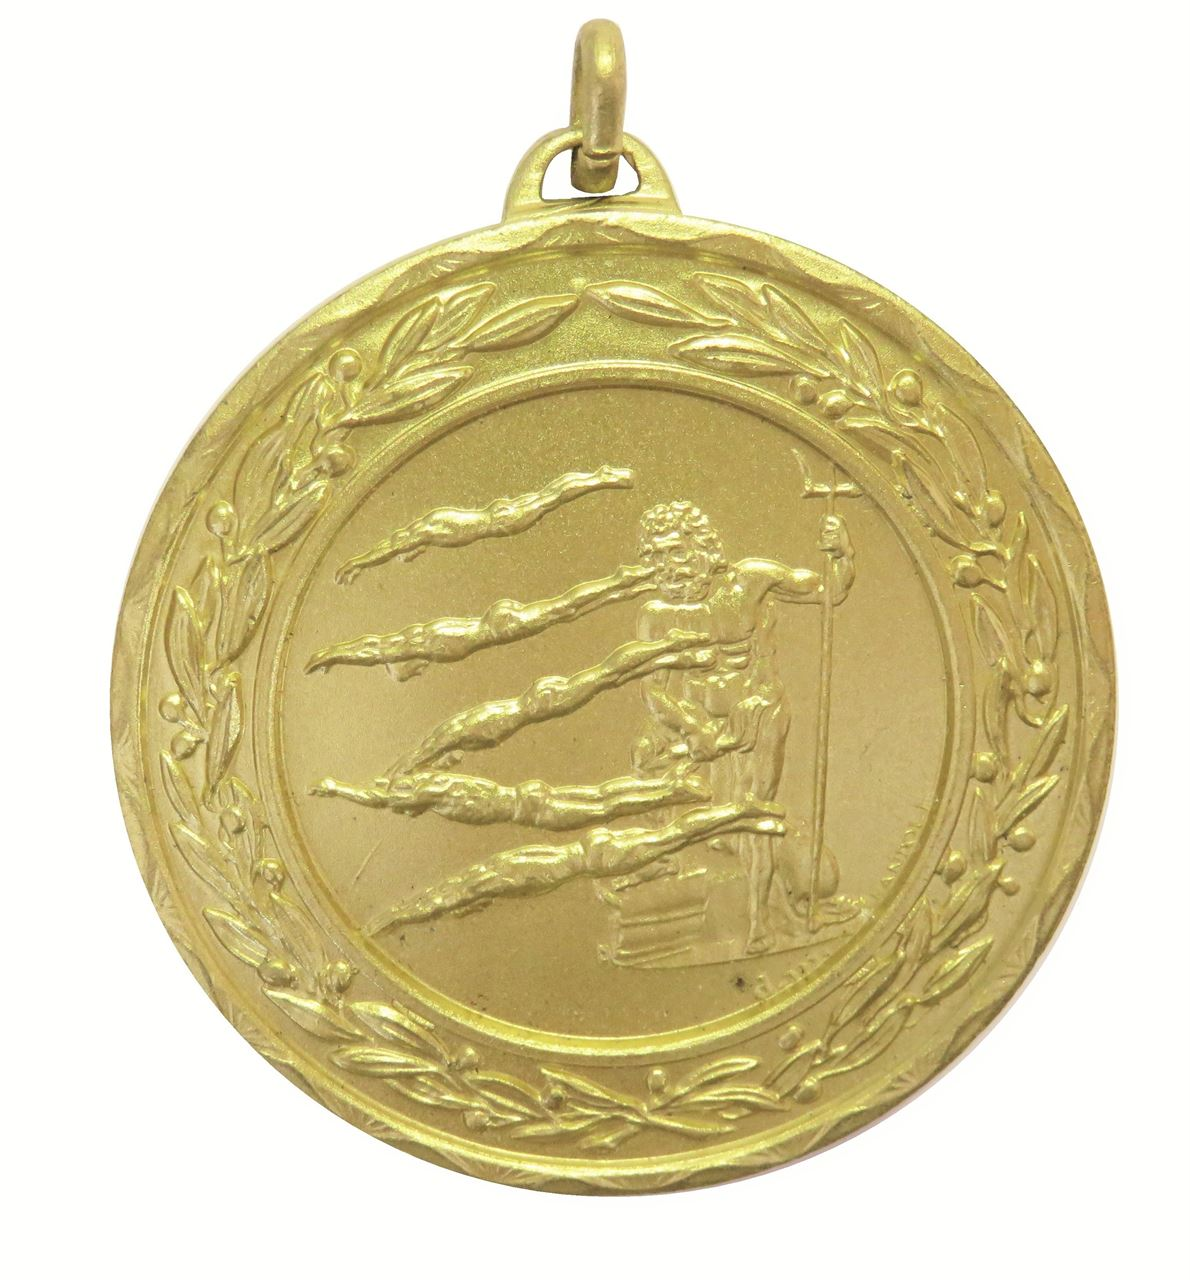 Gold Laurel Economy Poseidon Swimming Medal (size: 50mm) - 4231E